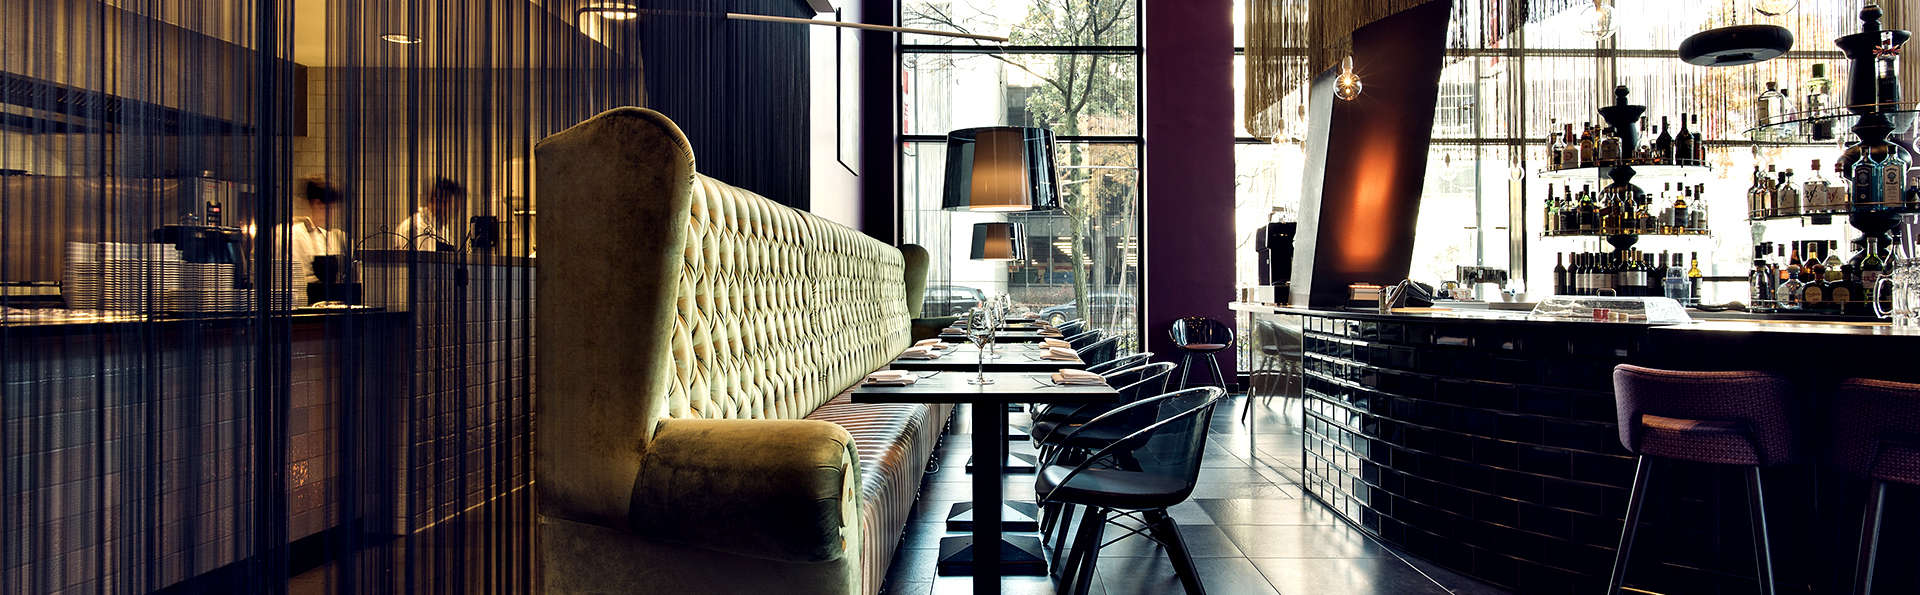 Inntel Hotels Art Eindhoven - EDIT_NEW_RESTAURANT.jpg